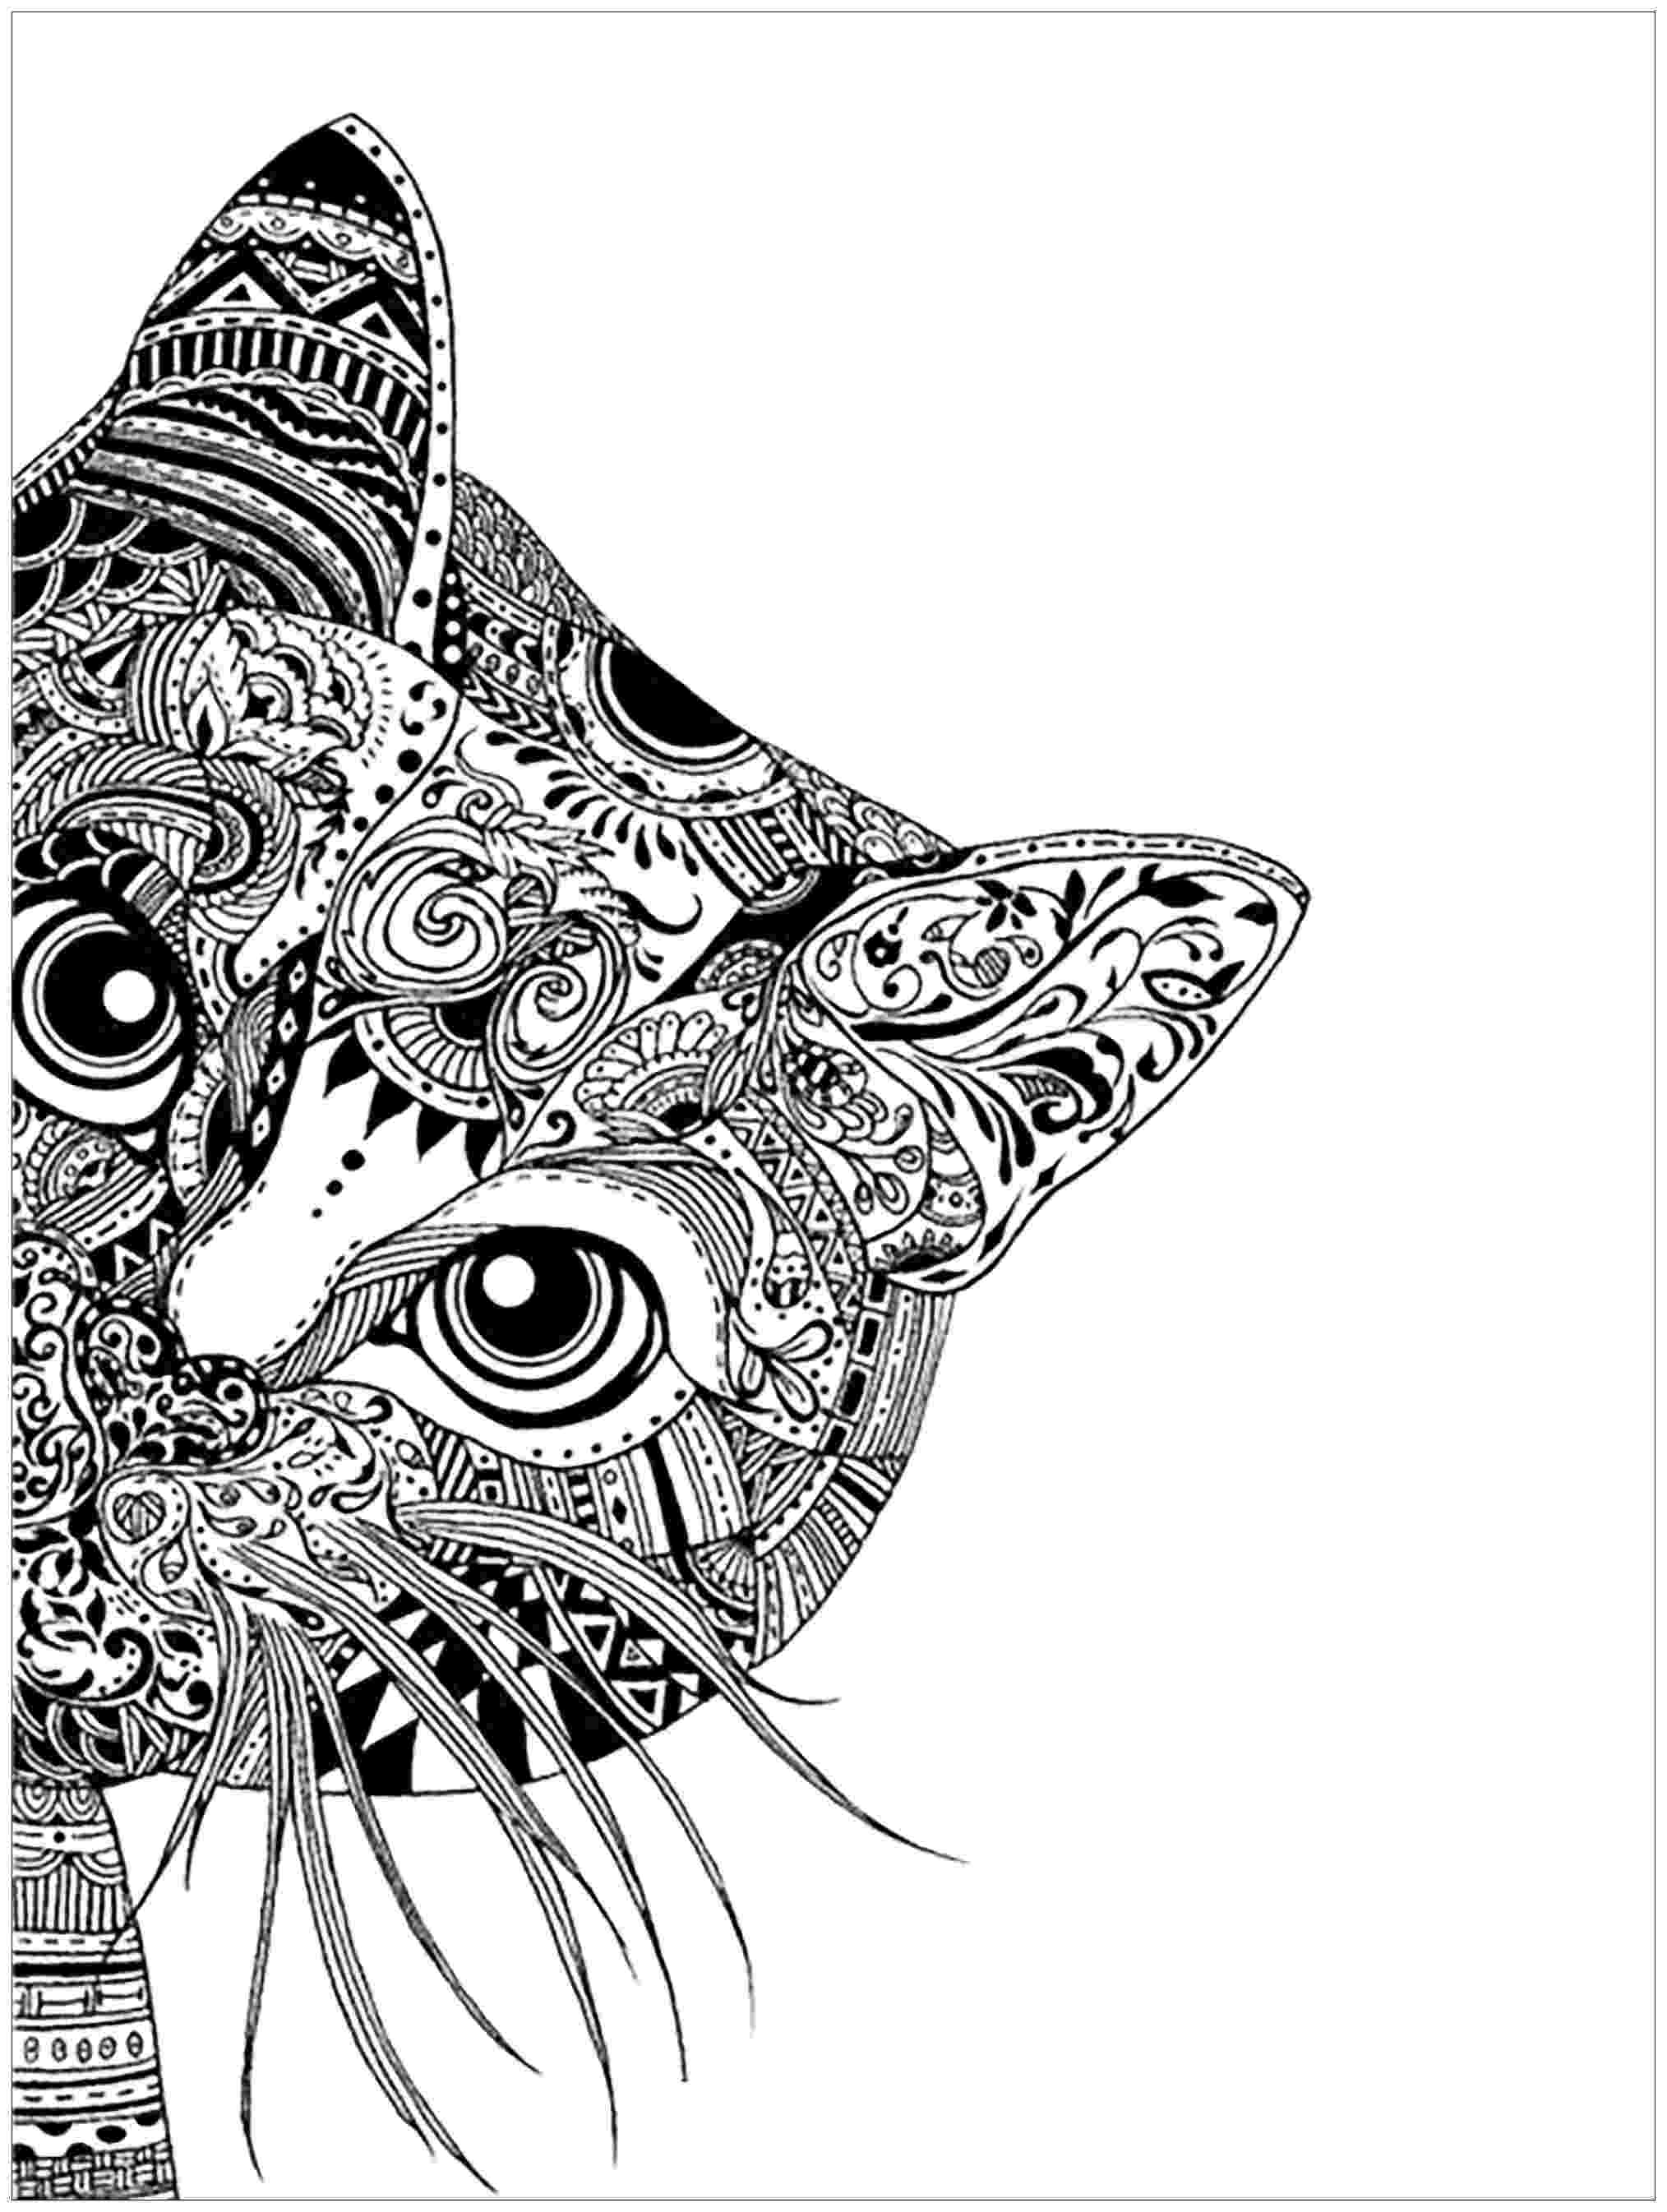 coloring book for adults where to cat head cats adult coloring pages for to coloring where book adults